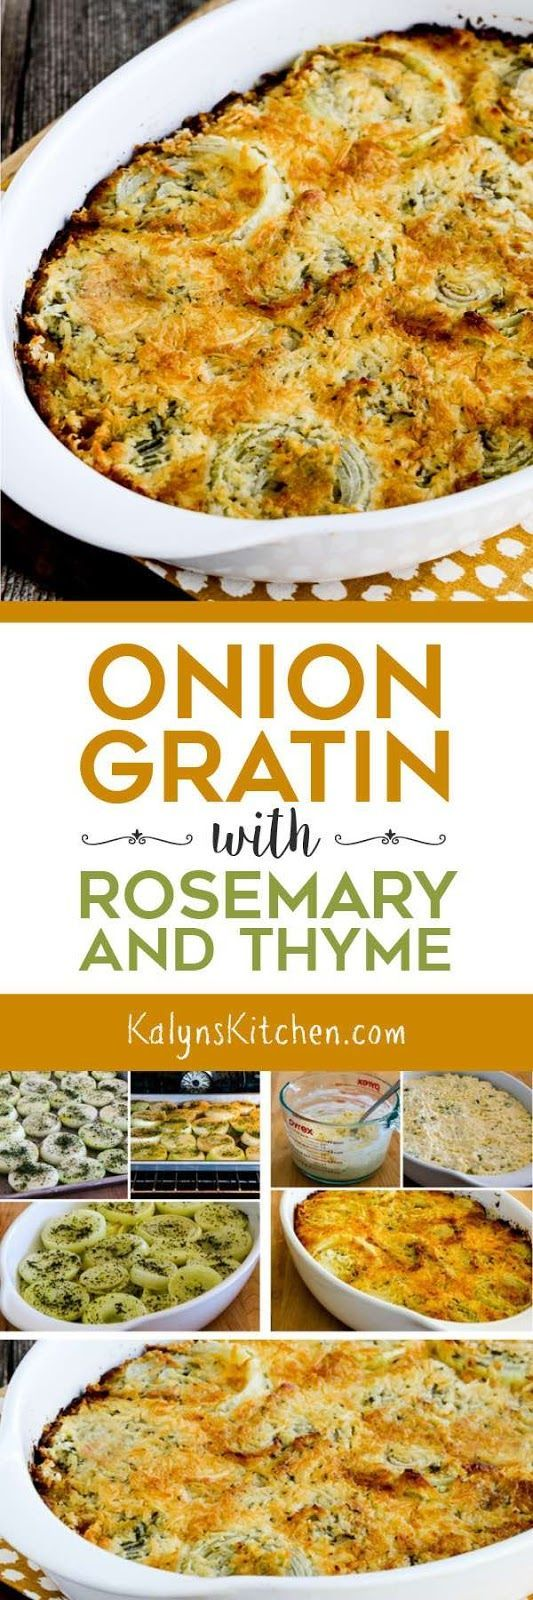 Onion Gratin with Rosemary and Thyme | Meals, Side dishes for ...